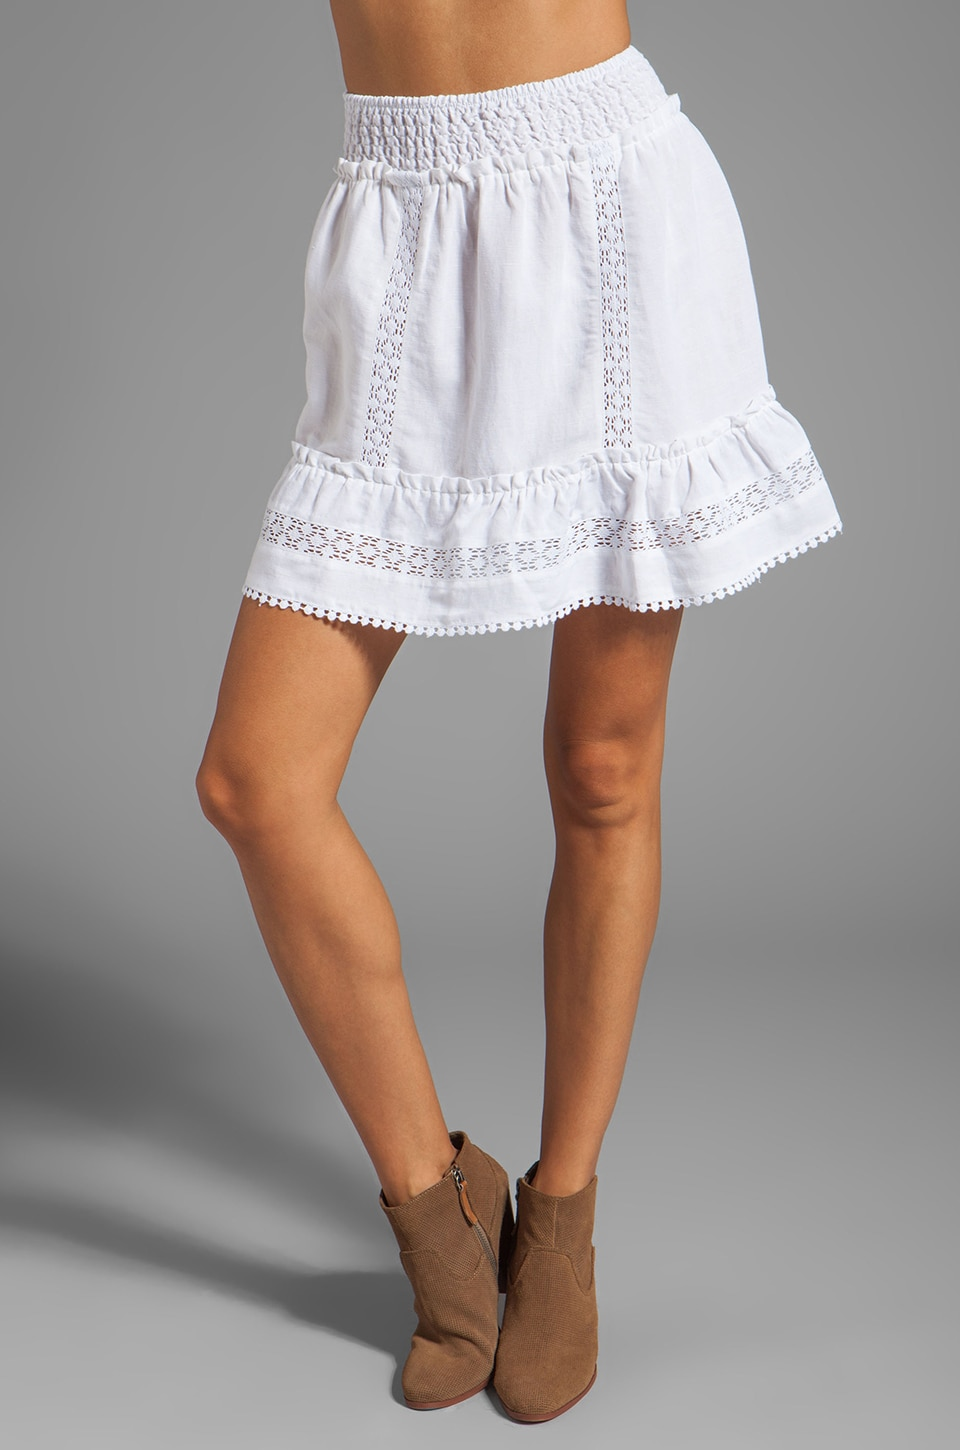 ANINE BING Bohemian Skirt in White